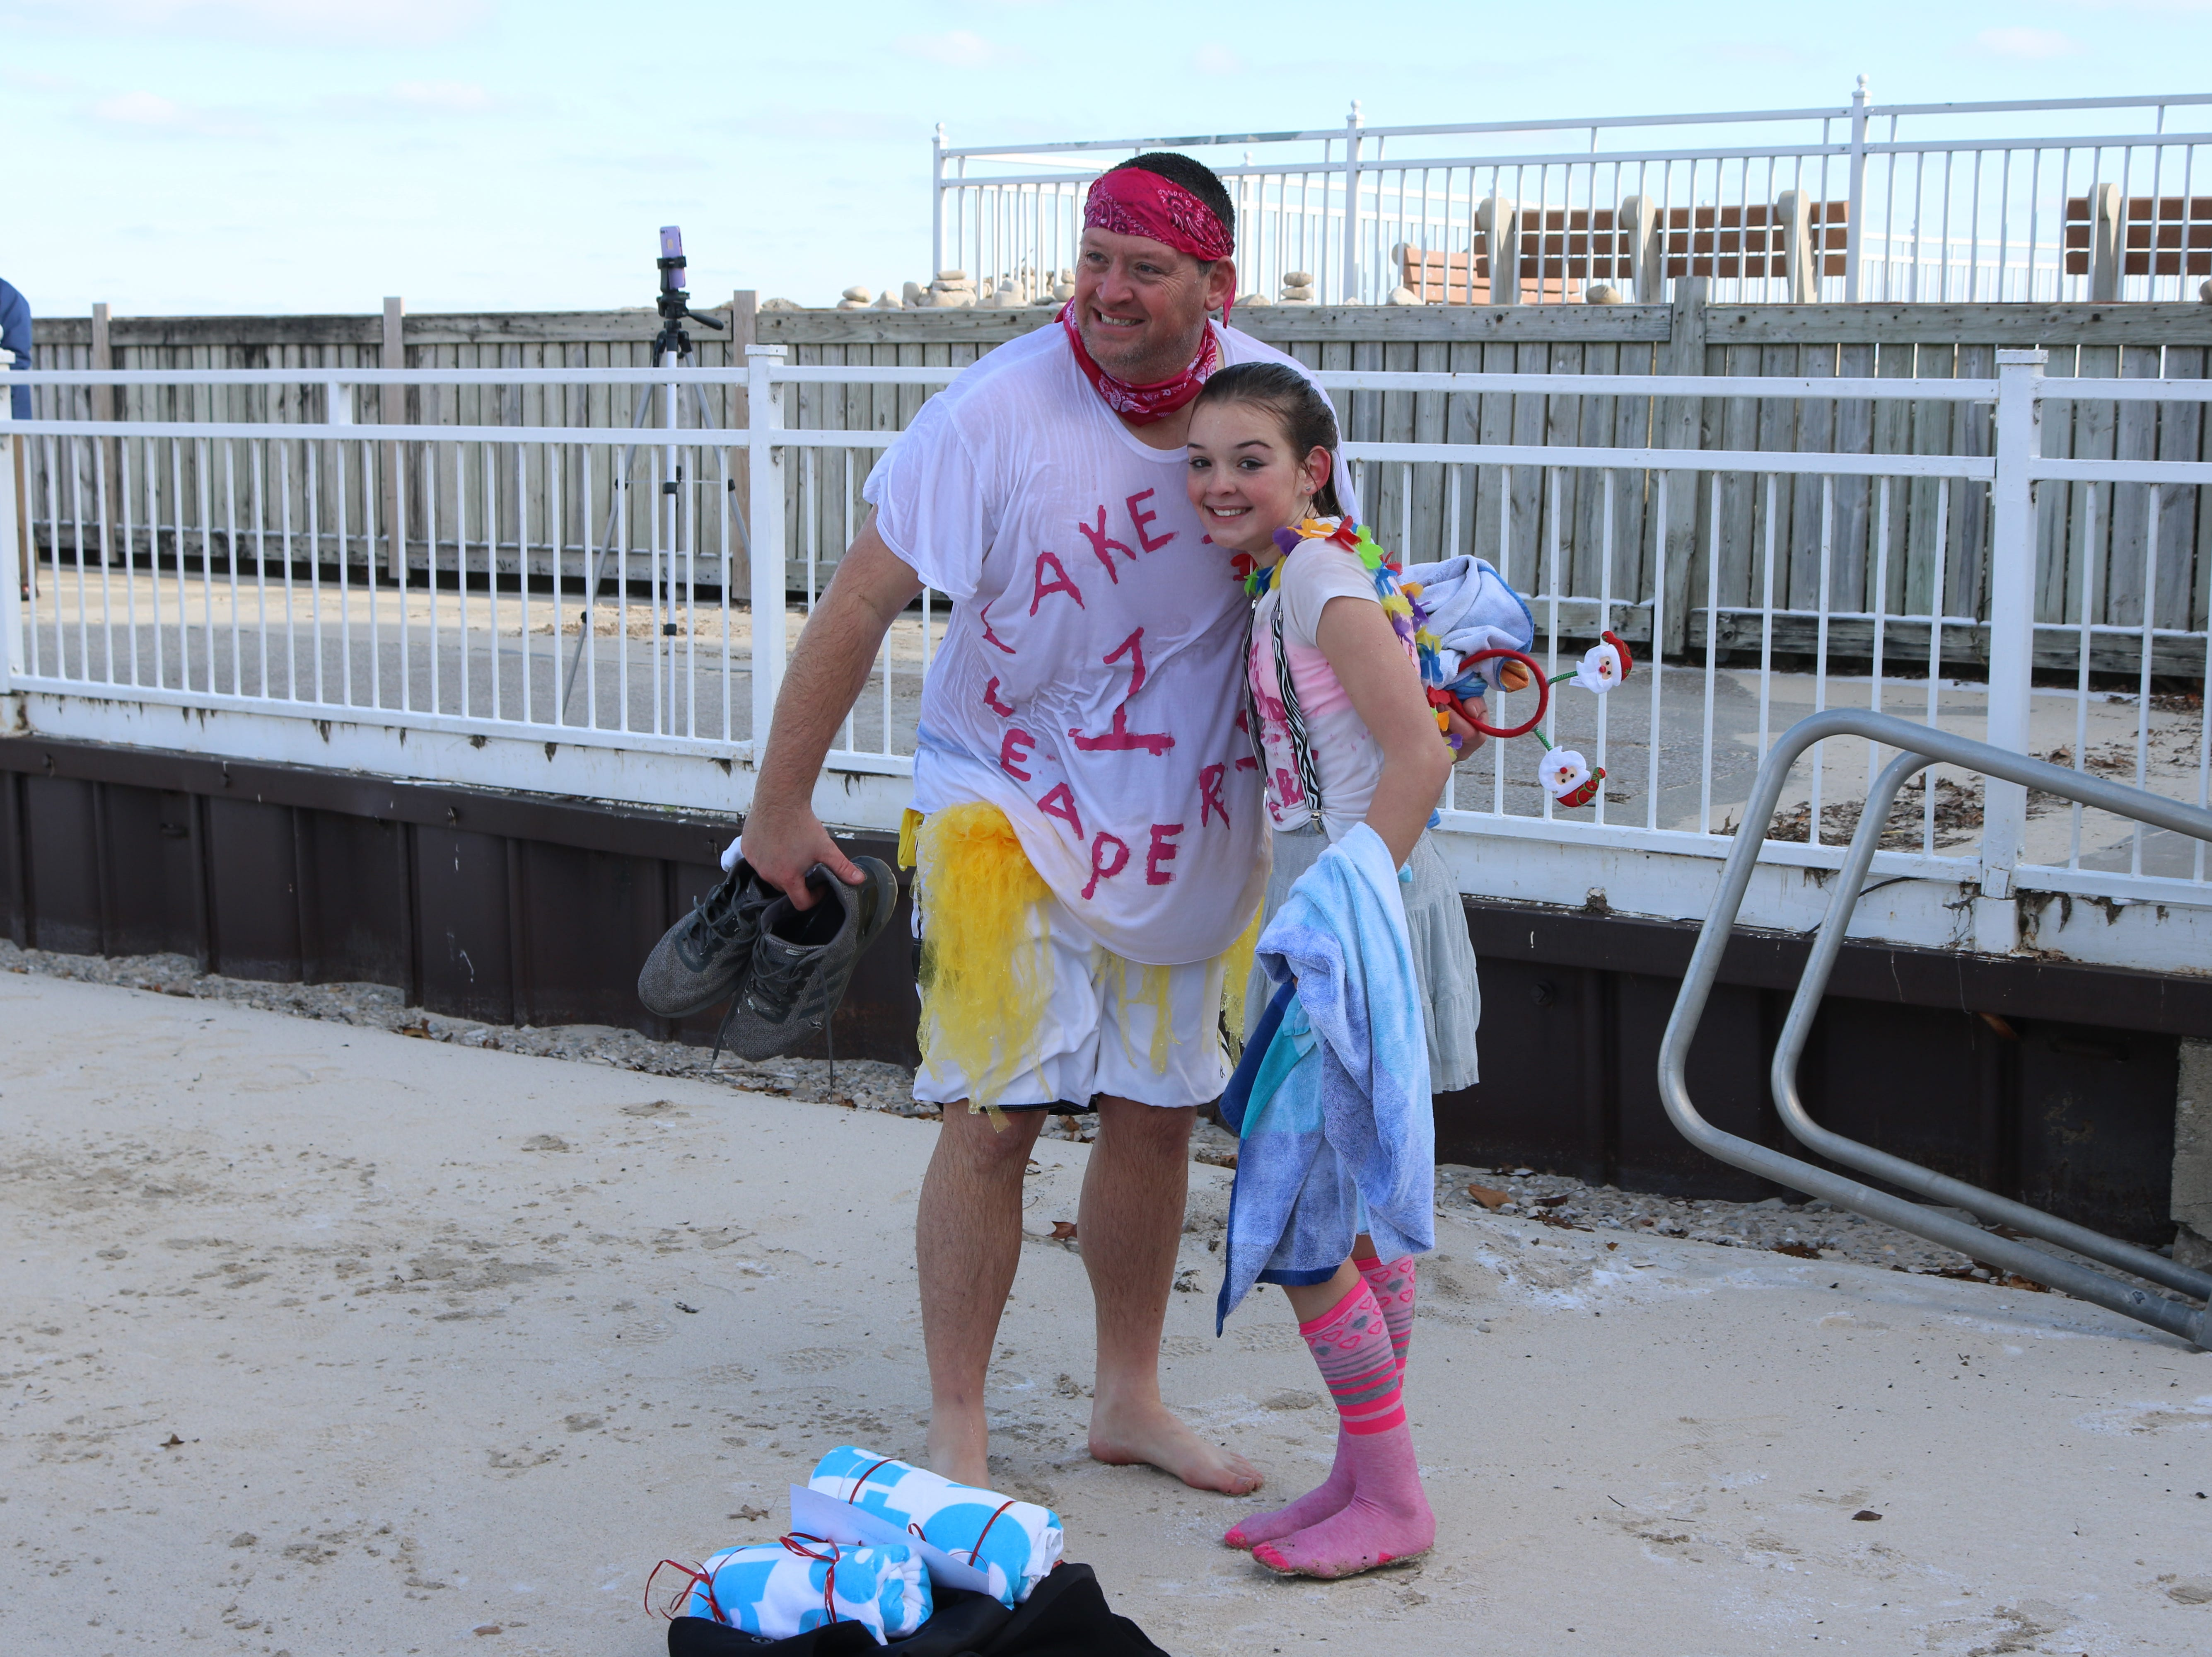 """Chris and Makenna Langford, of Oregon, Ohio, pose for a photo after plunging into Lake Erie for the """"Jingle Jump"""" at Lakeside on Saturday."""